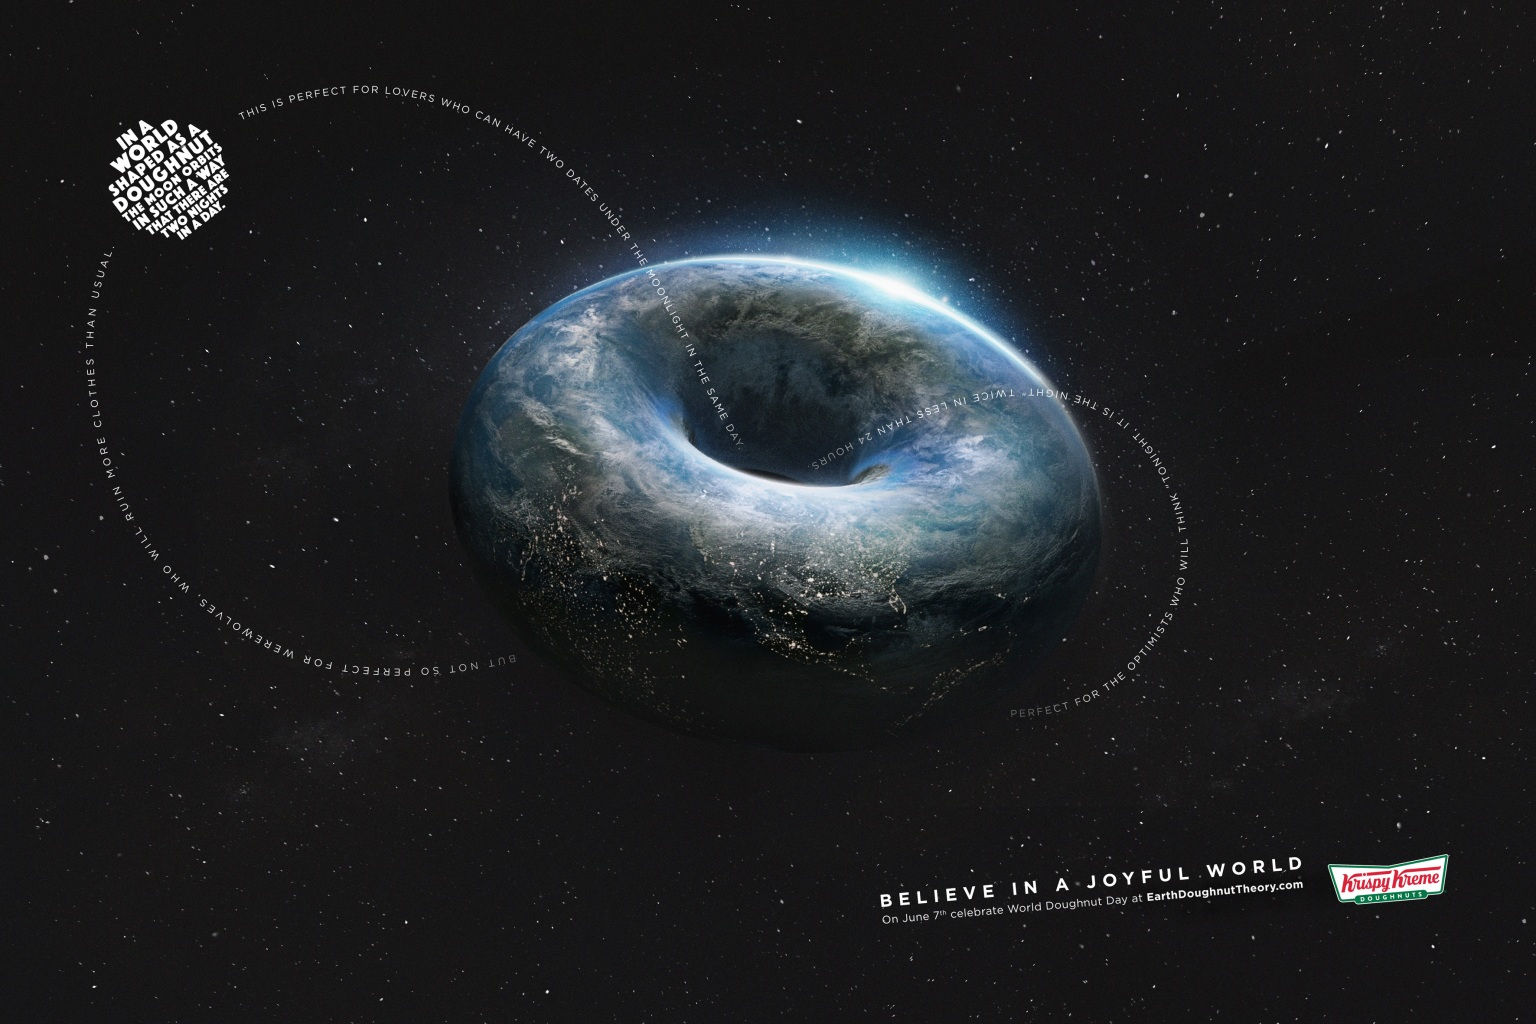 Krispy Kreme - Earth Doughnut Theory